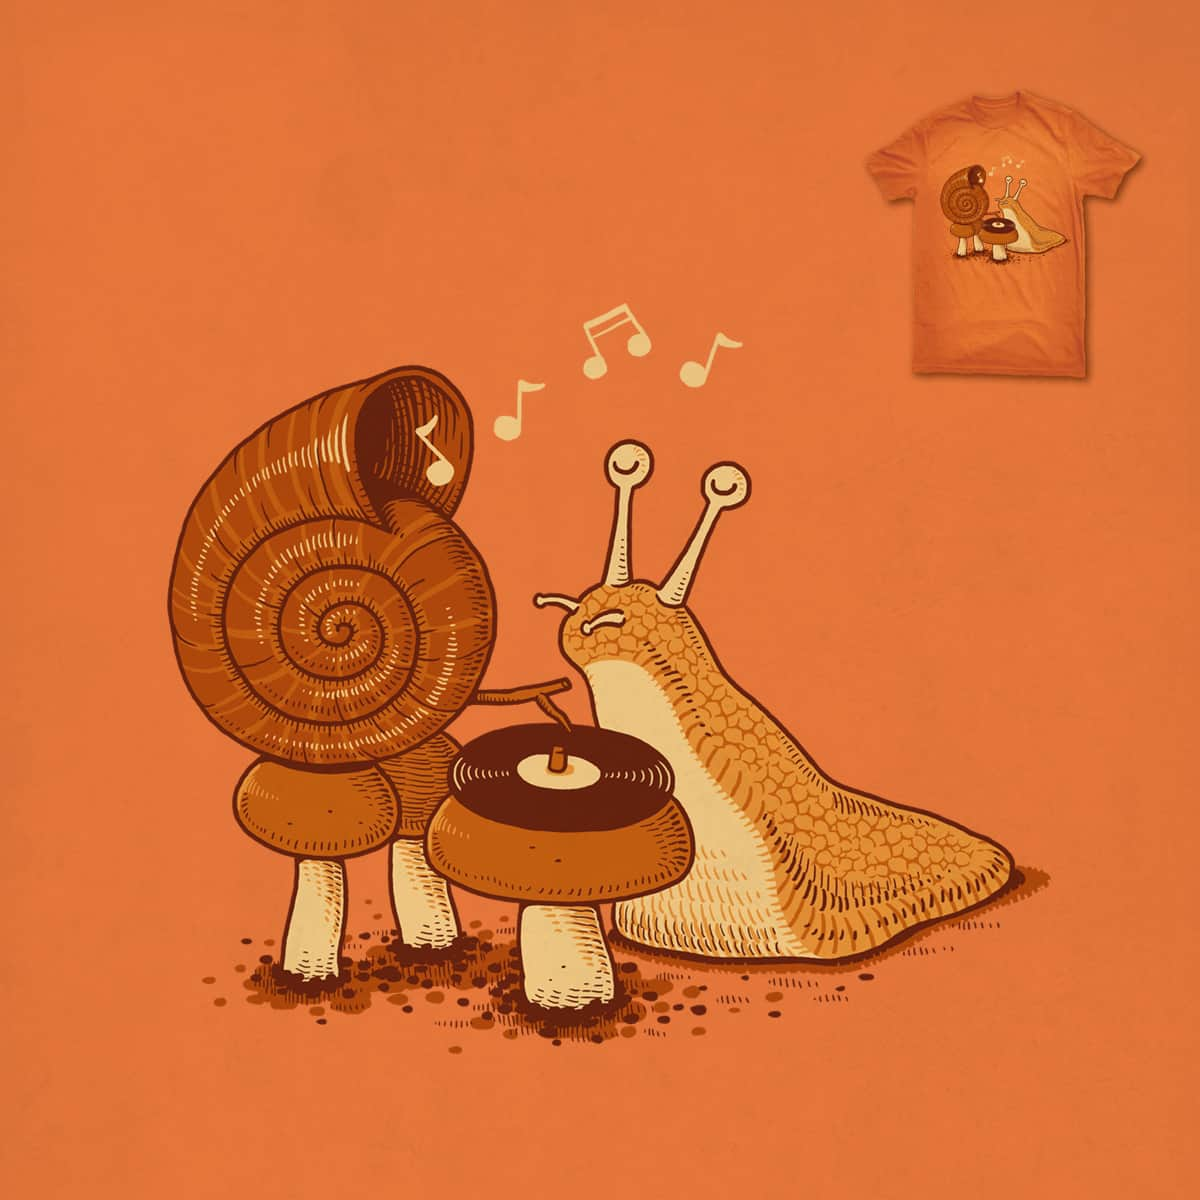 Snail Shell Gramophone by ben chen on Threadless